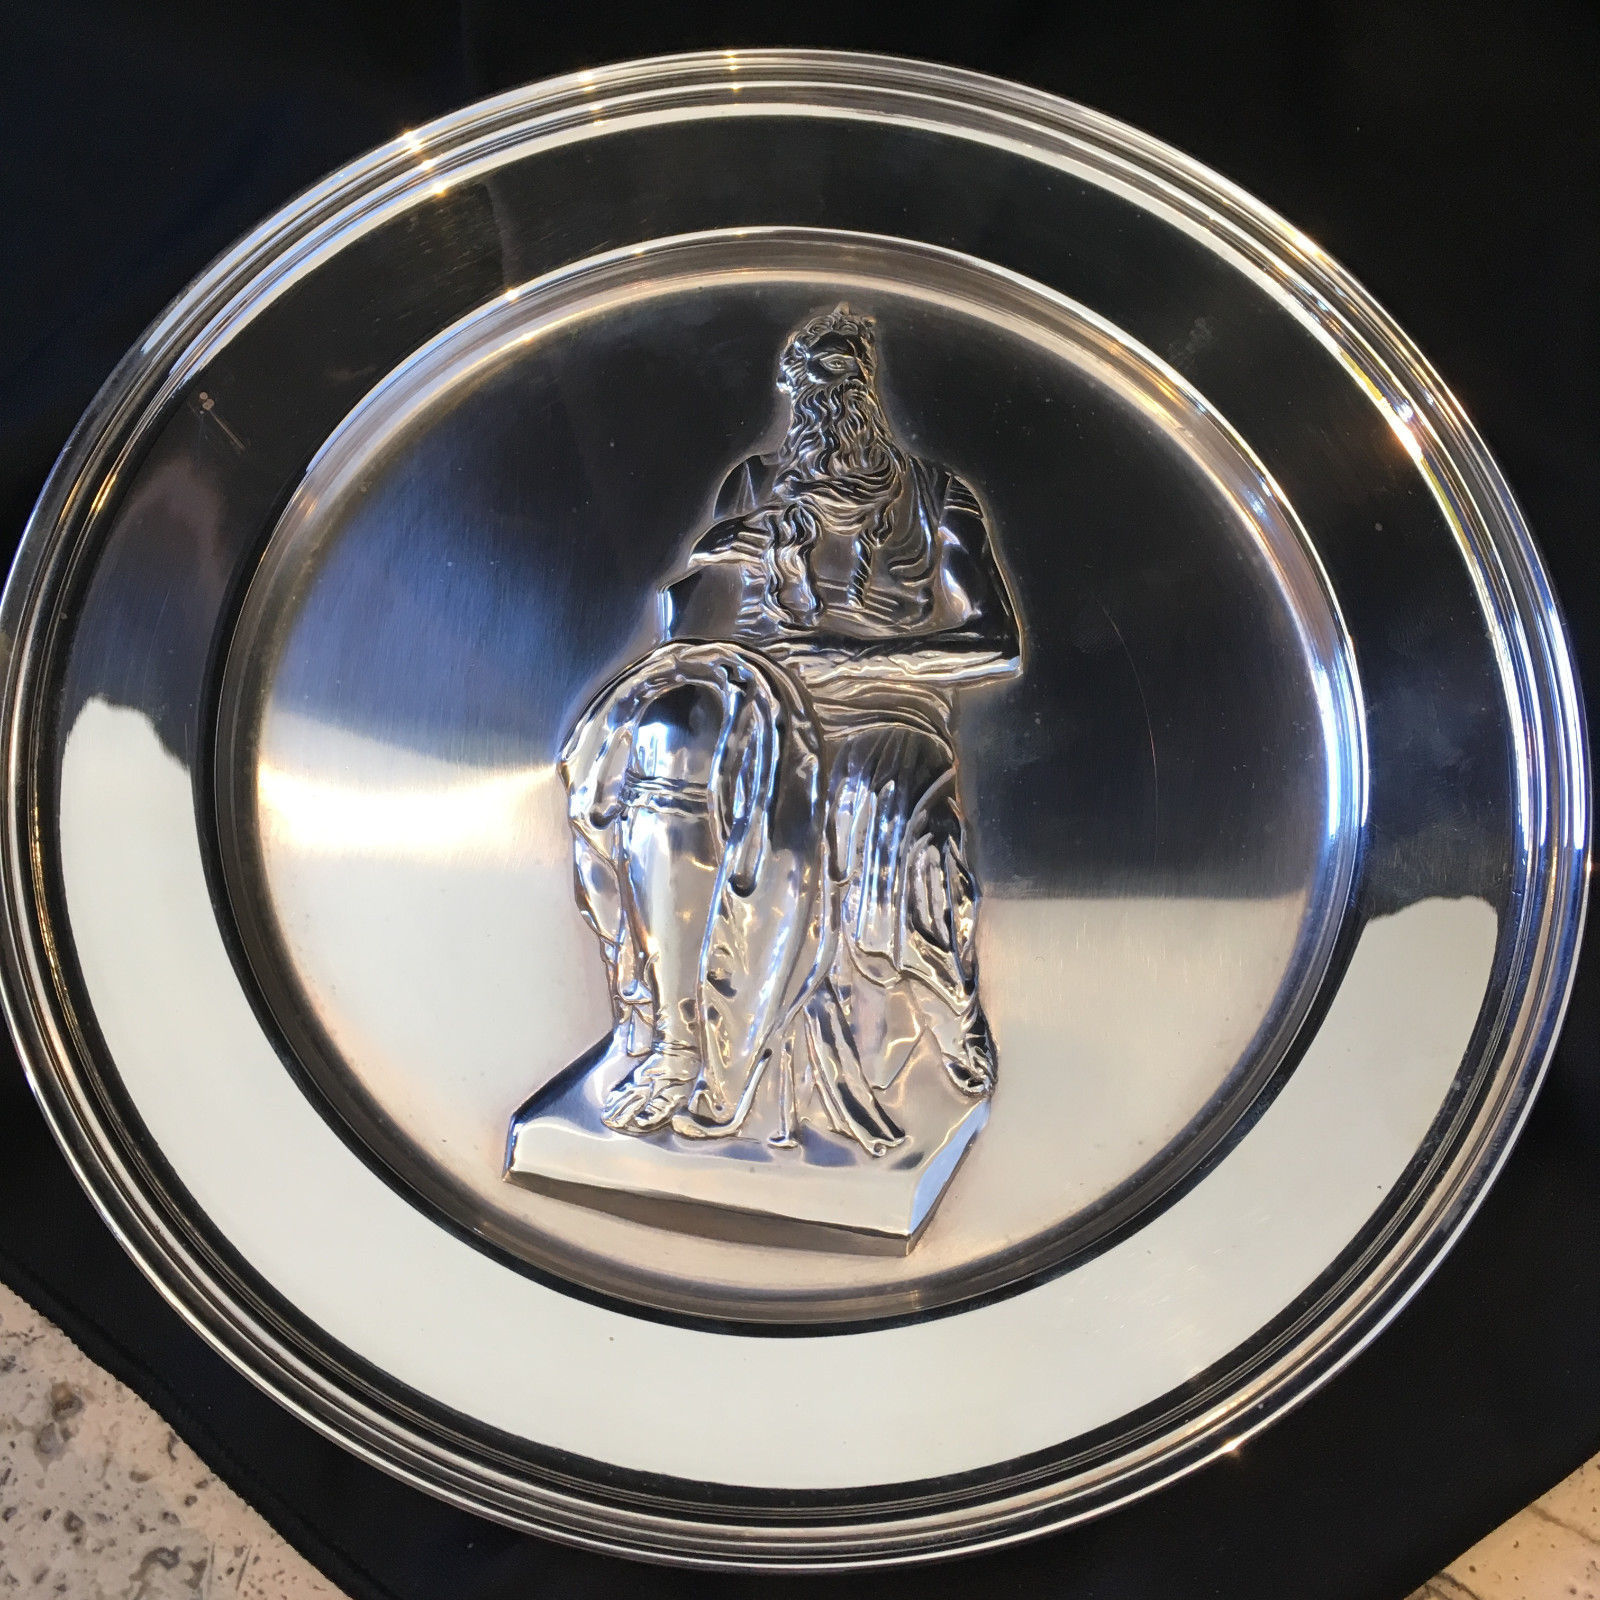 Primary image for Moses by Michelangelo Large Plate Sterling Silver Stamped England 12.25 ozt - 9""